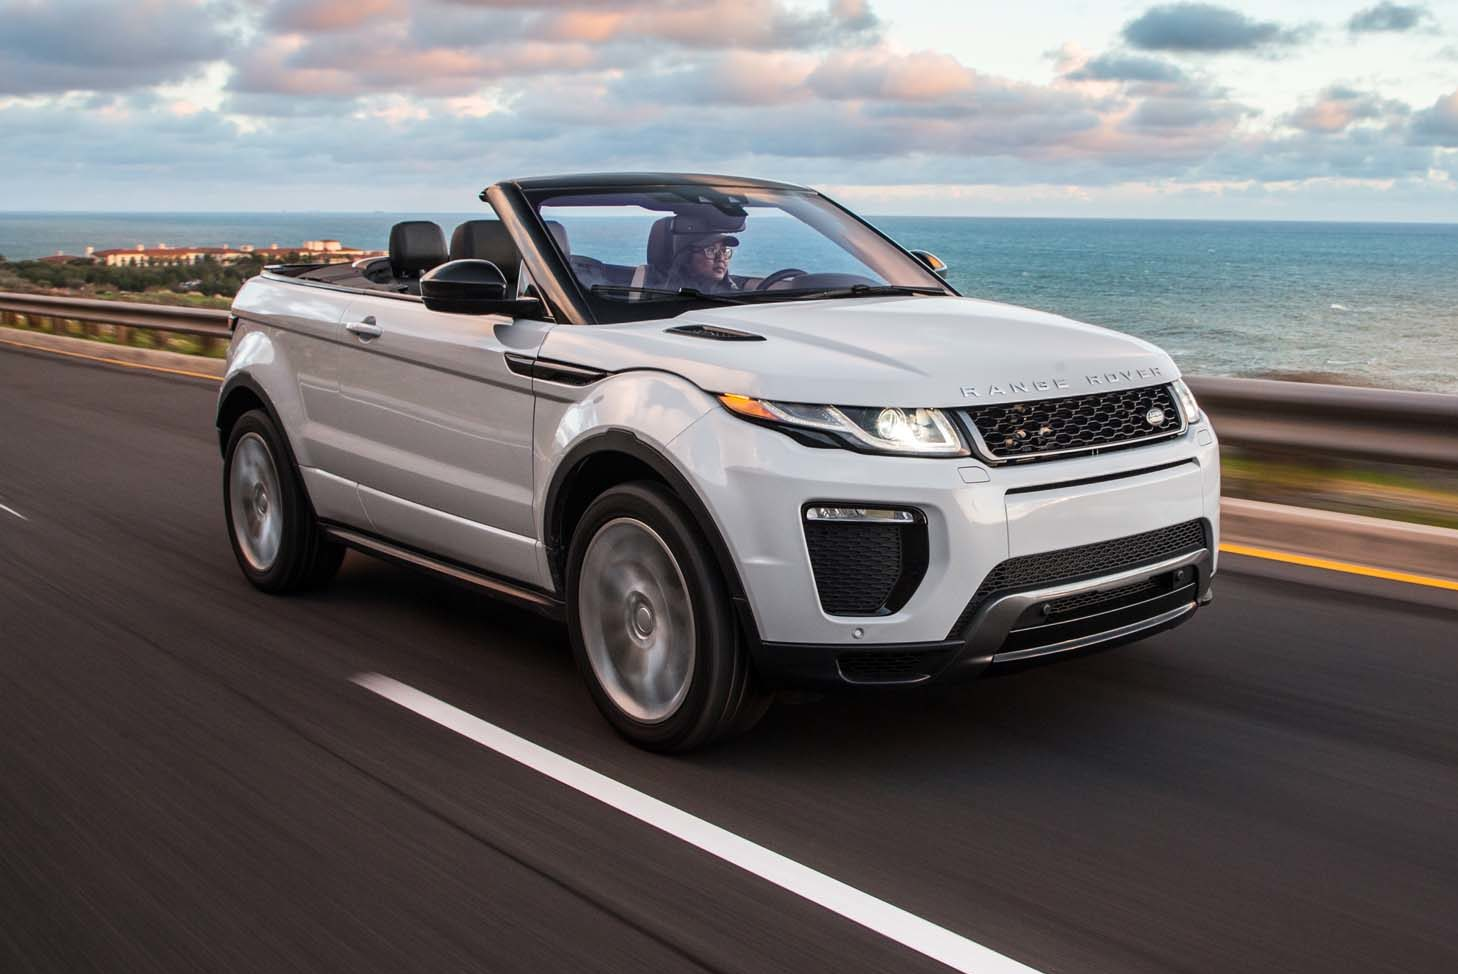 2017 land rover range rover evoque review autoreportng. Black Bedroom Furniture Sets. Home Design Ideas